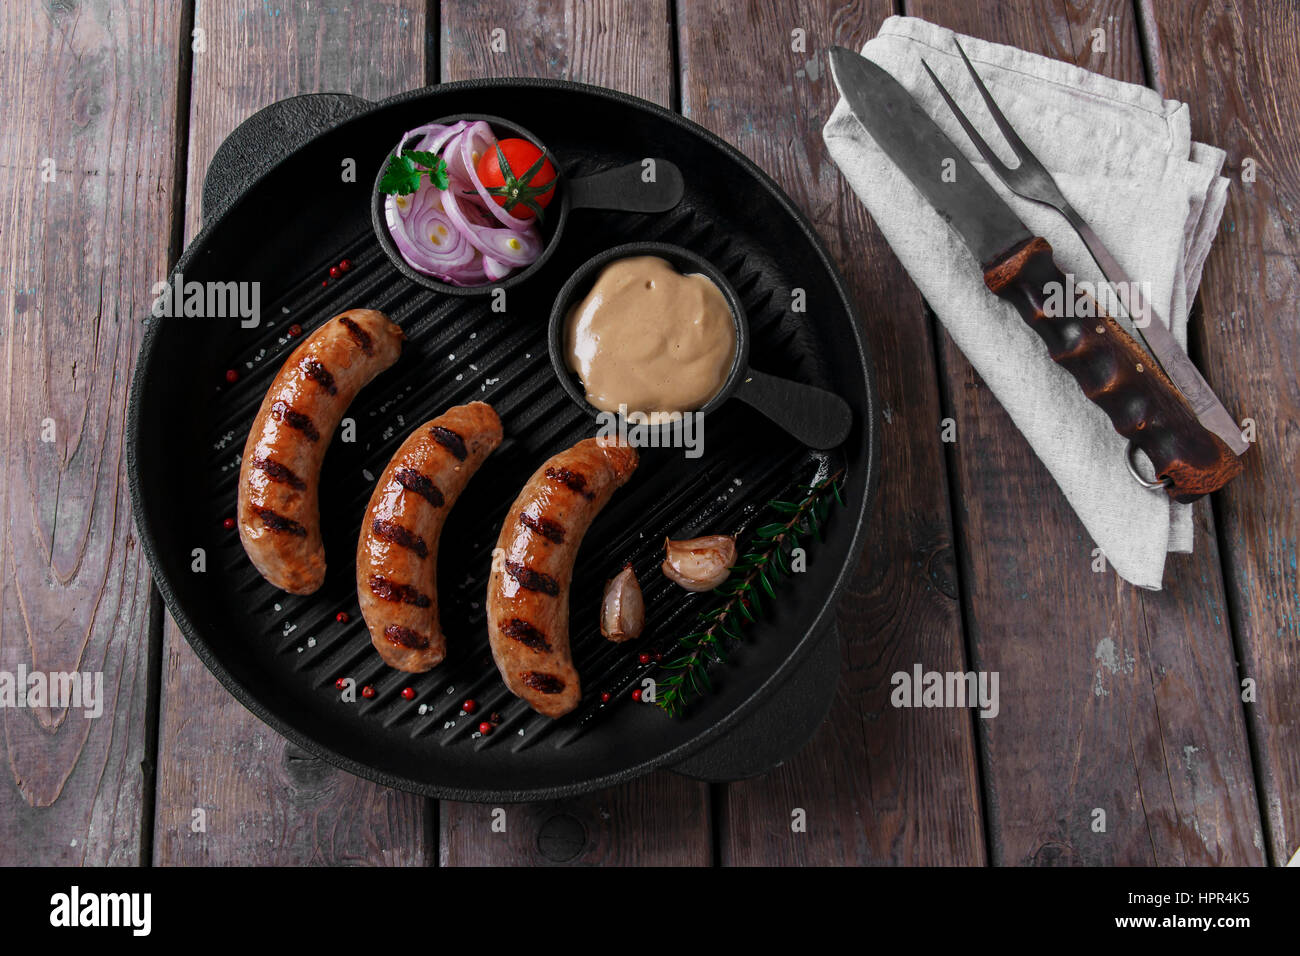 homemade grilled sausage with spices on grill - Stock Image